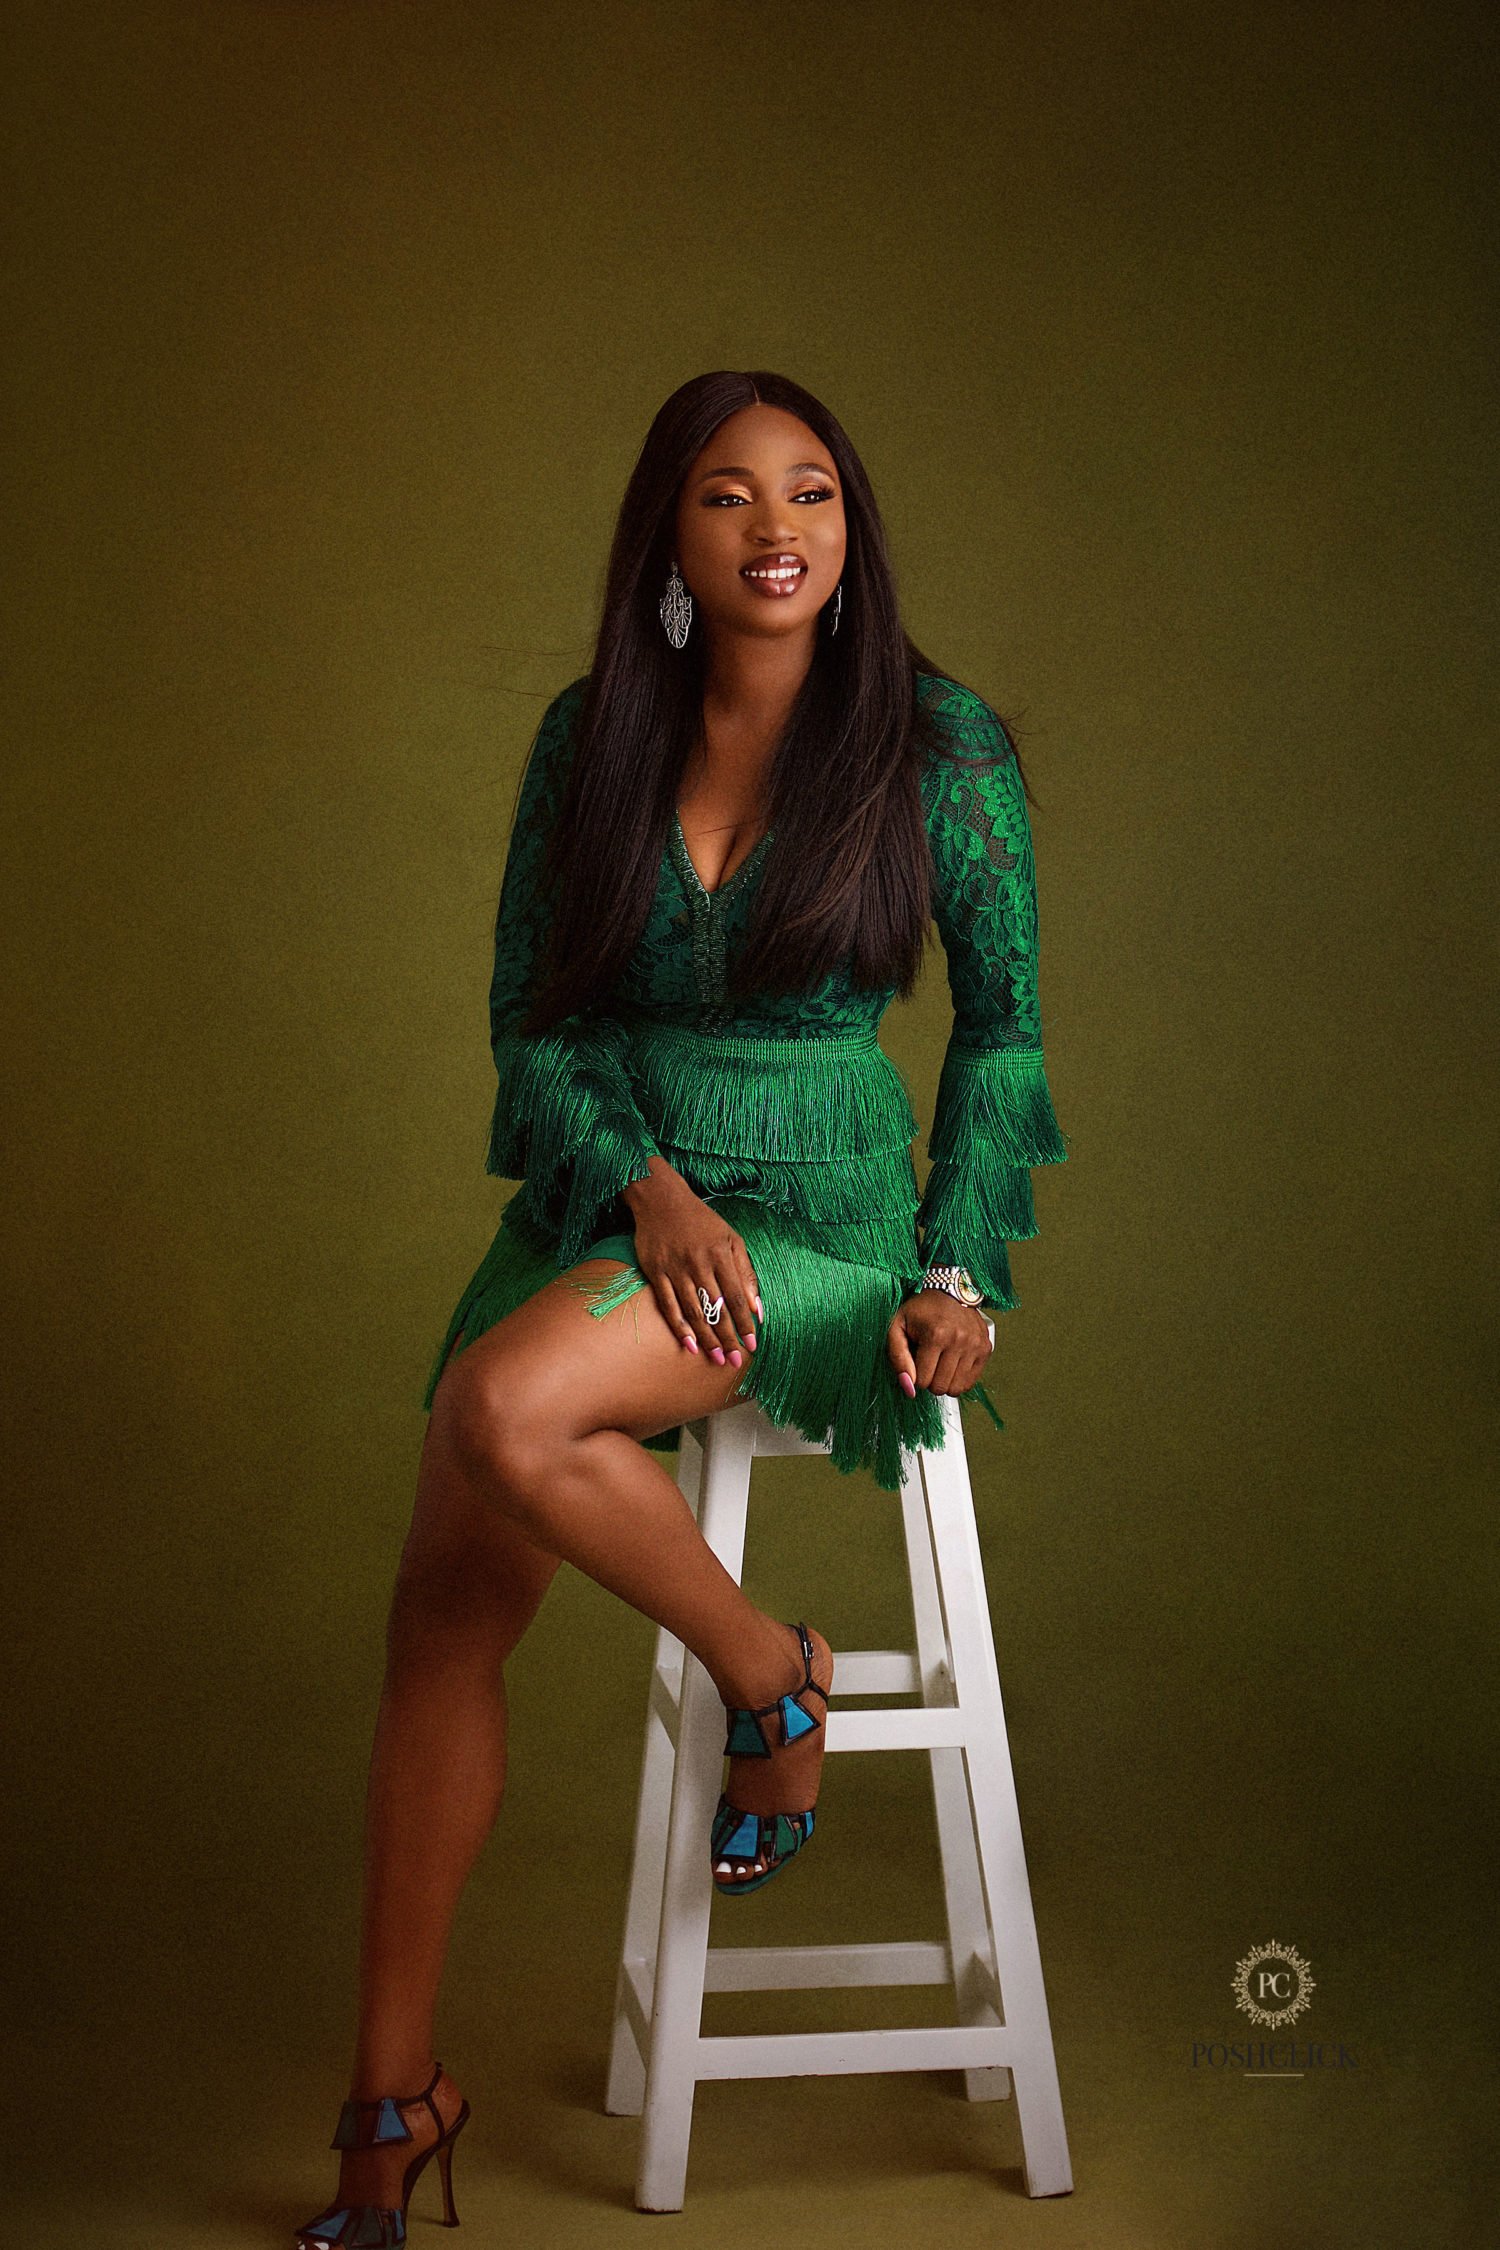 #StyleSociety: These Latifah Laniyan Photos Prove She's Like Fine Wine, She Only Gets Better With Age